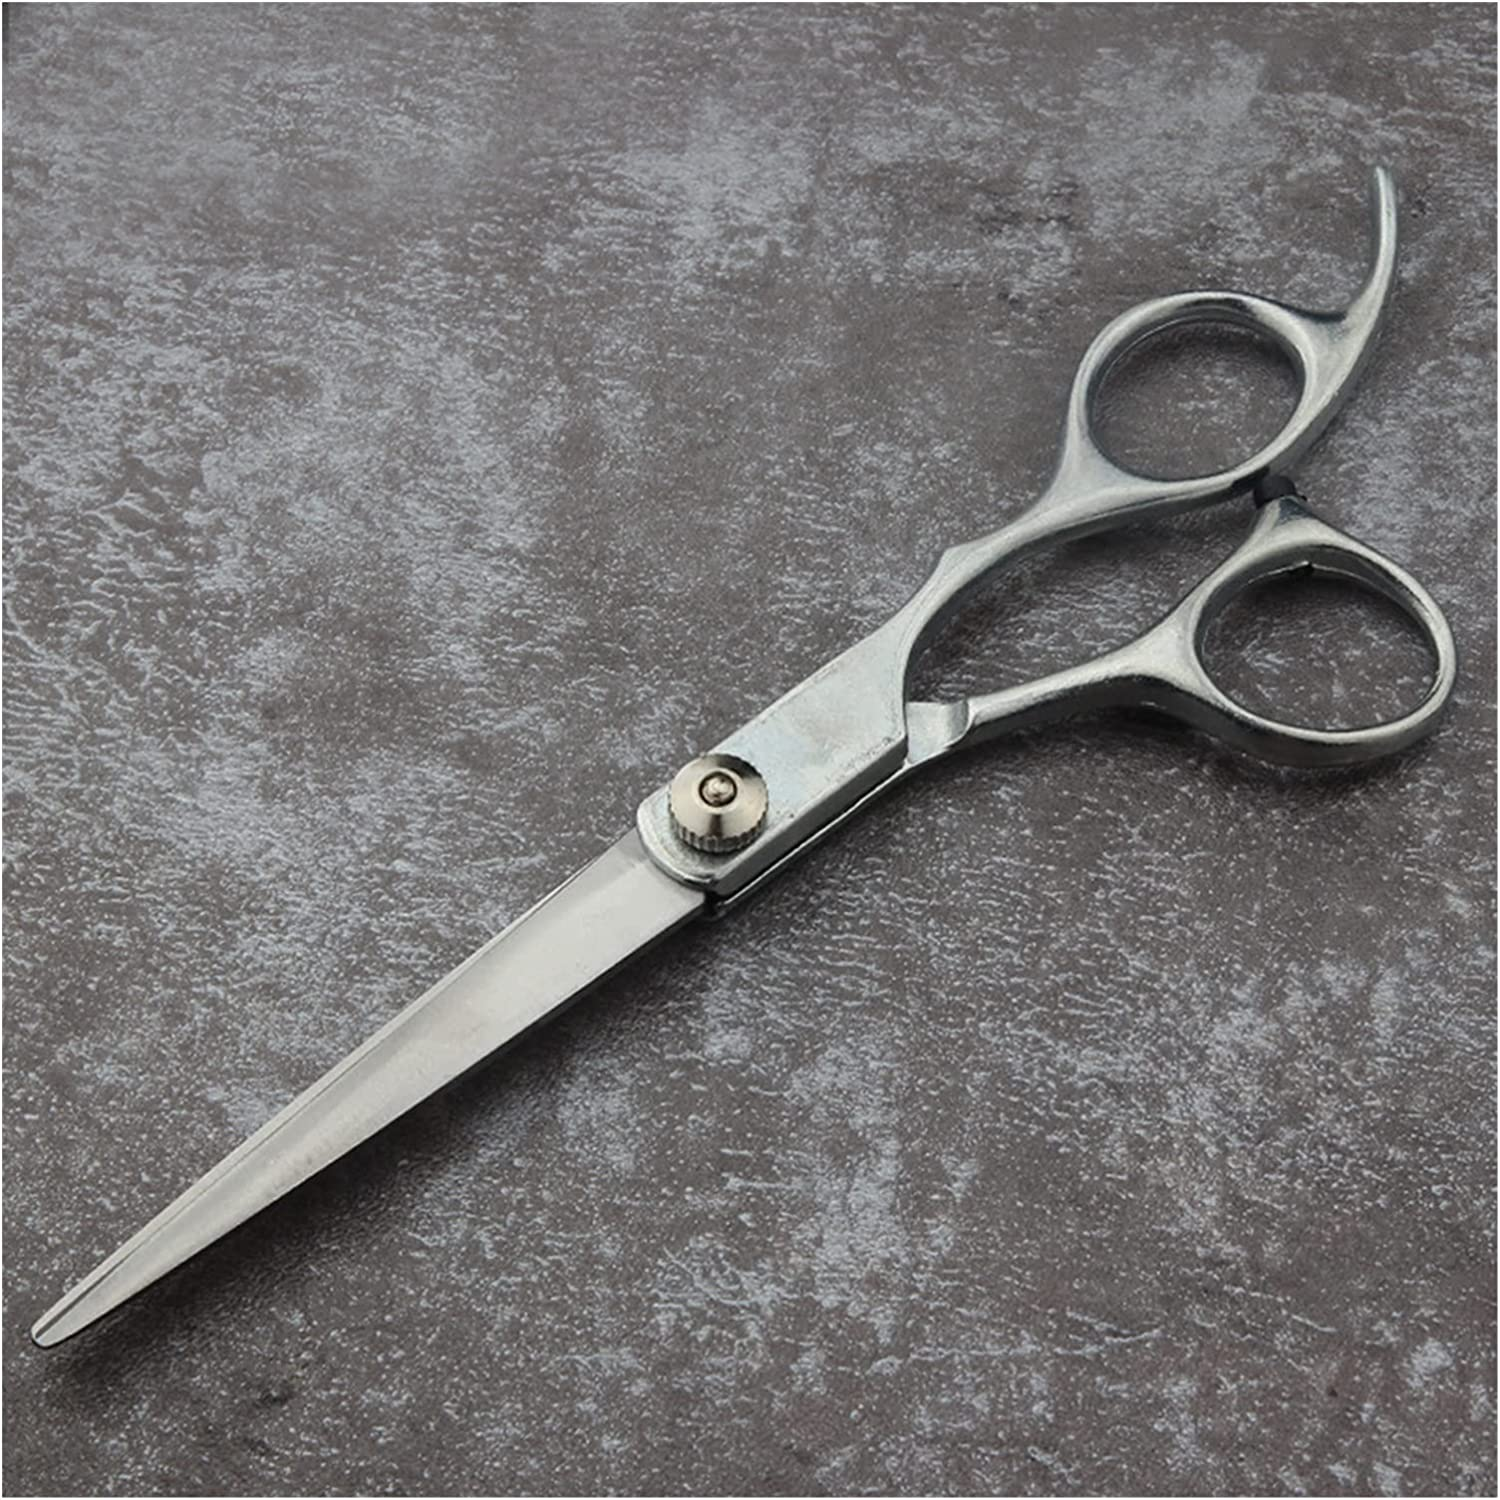 YIBANG-DZSW Hair Cutting Max 78% OFF latest Shears Scissors Special Hairdressing H